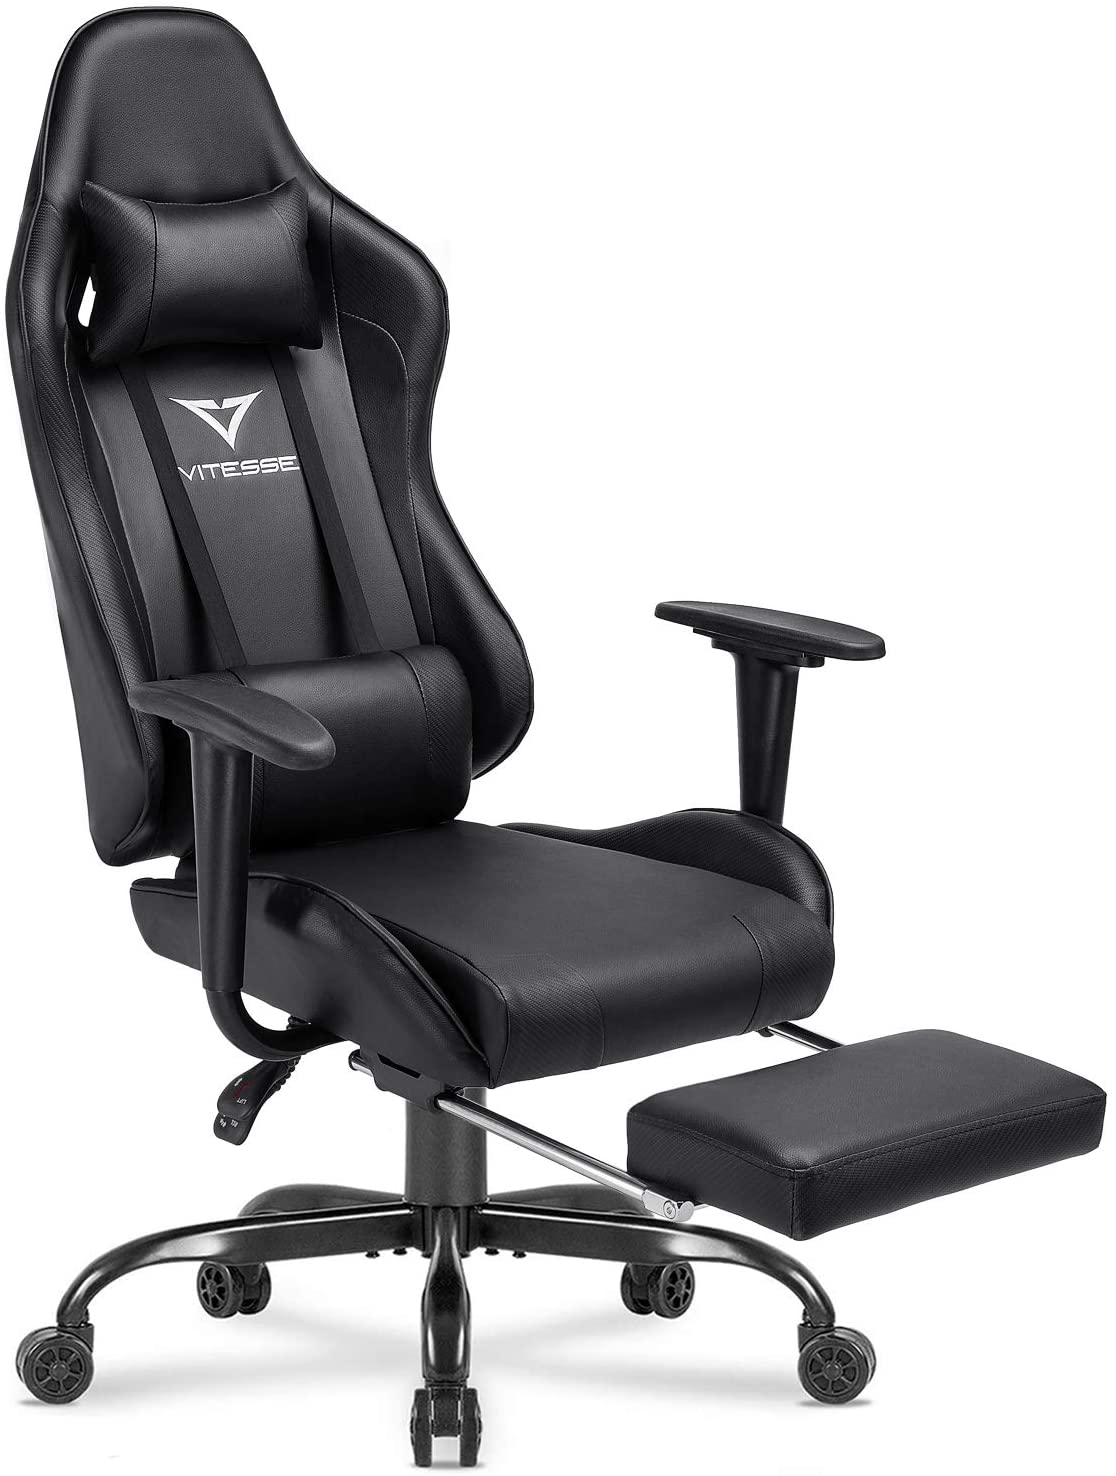 Vitesse Gaming Chair 無料サンプルOK with Footrest Racing Computer Style Office 爆買いセール